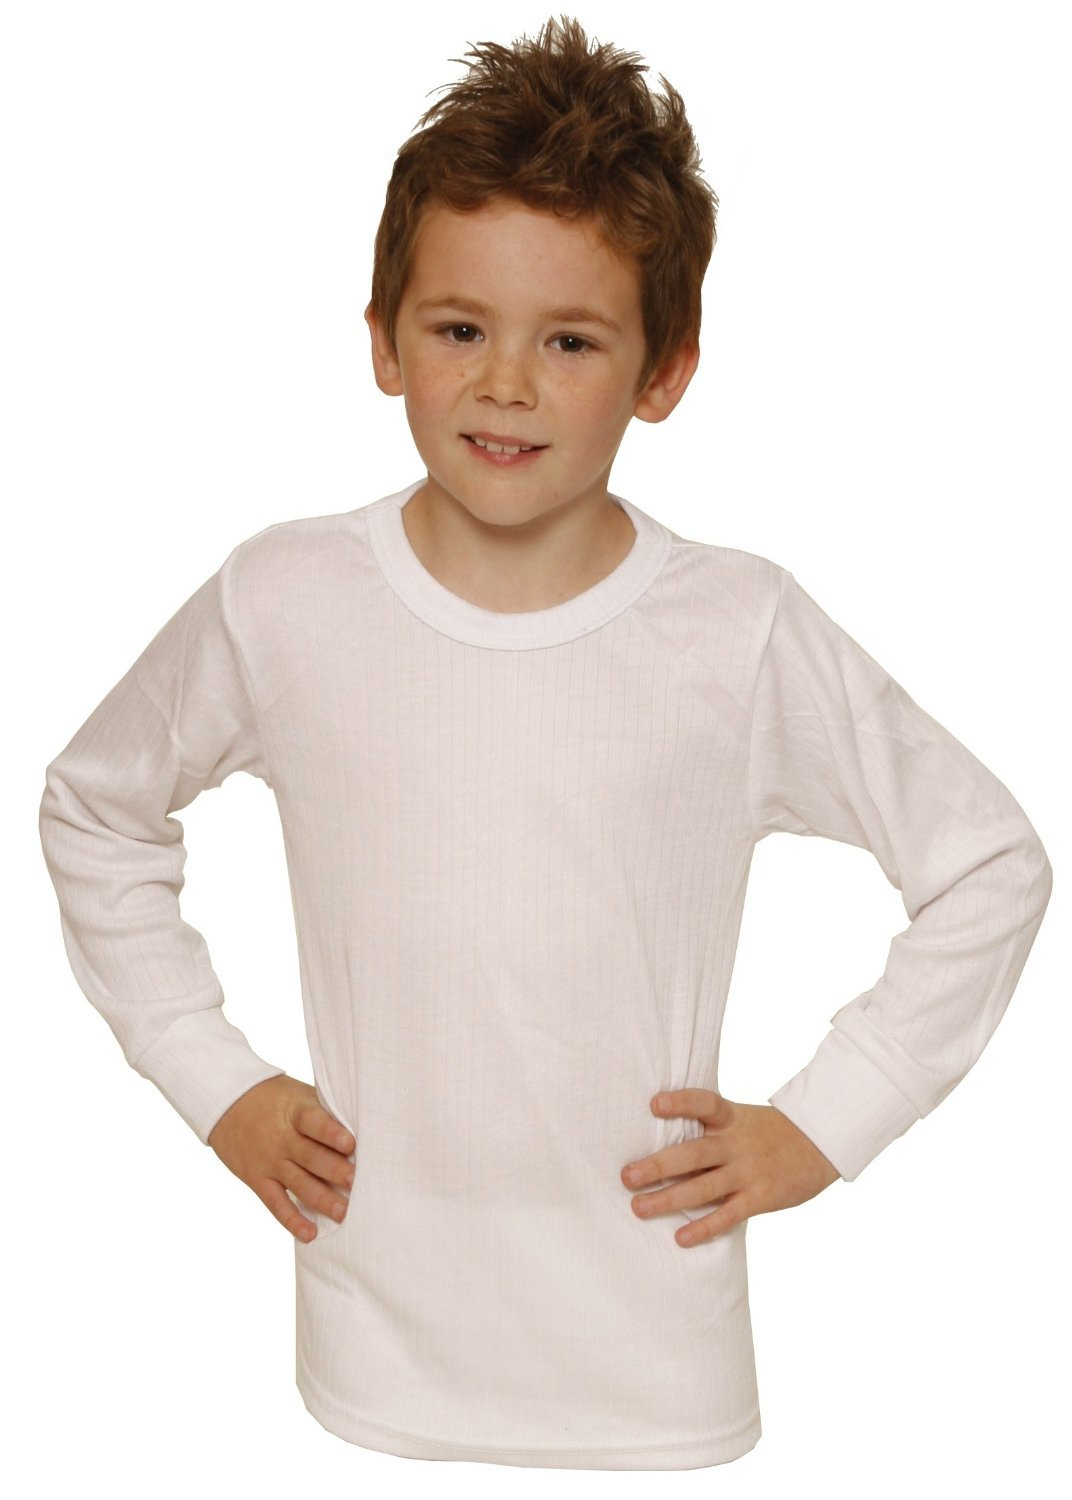 Octave 12 Pack Boys Thermal Underwear Long Sleeve T-Shirt/Vest/Top (9-11 yrs [Chest: 28-30 inches], White) by Octave